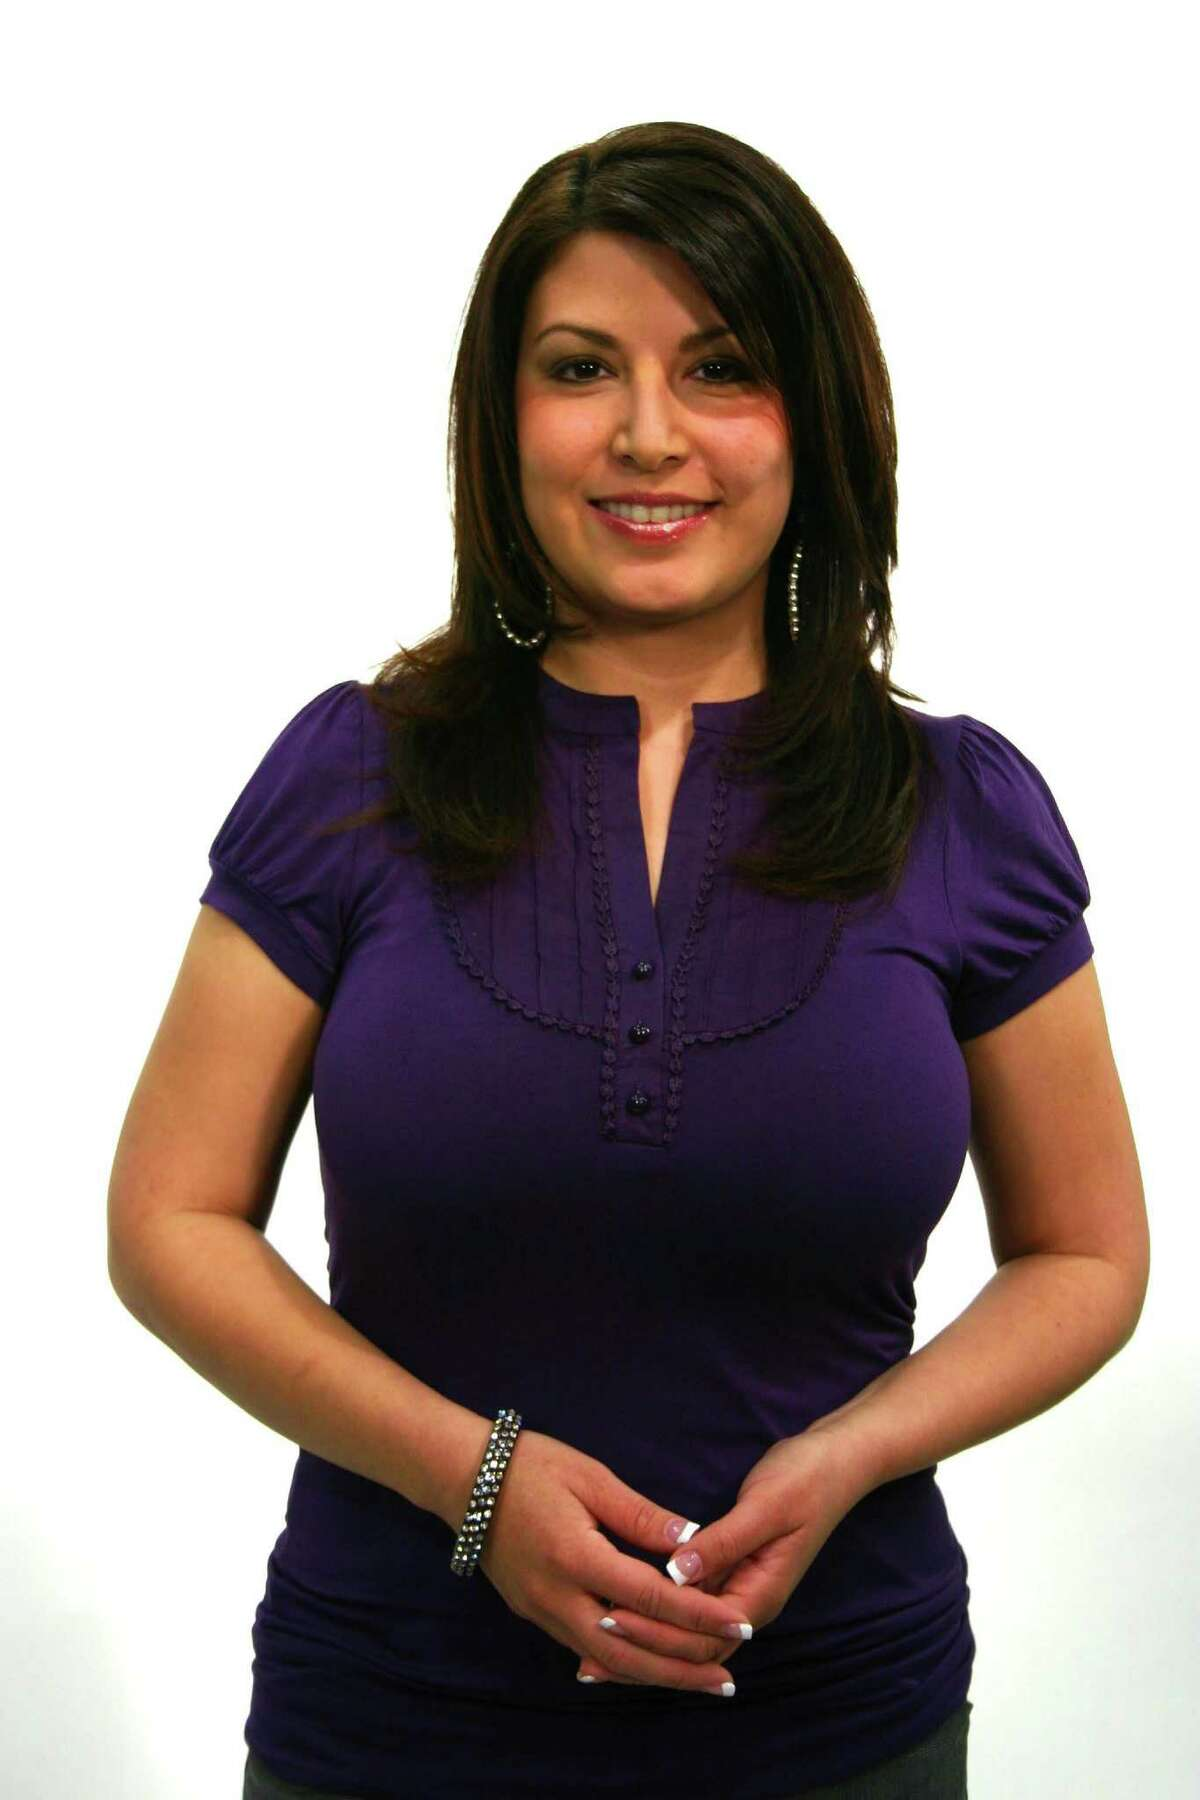 KABB-TV's anchor Karen Martinez, 37, raised awareness about cancer even as she was dying from breast cancer.